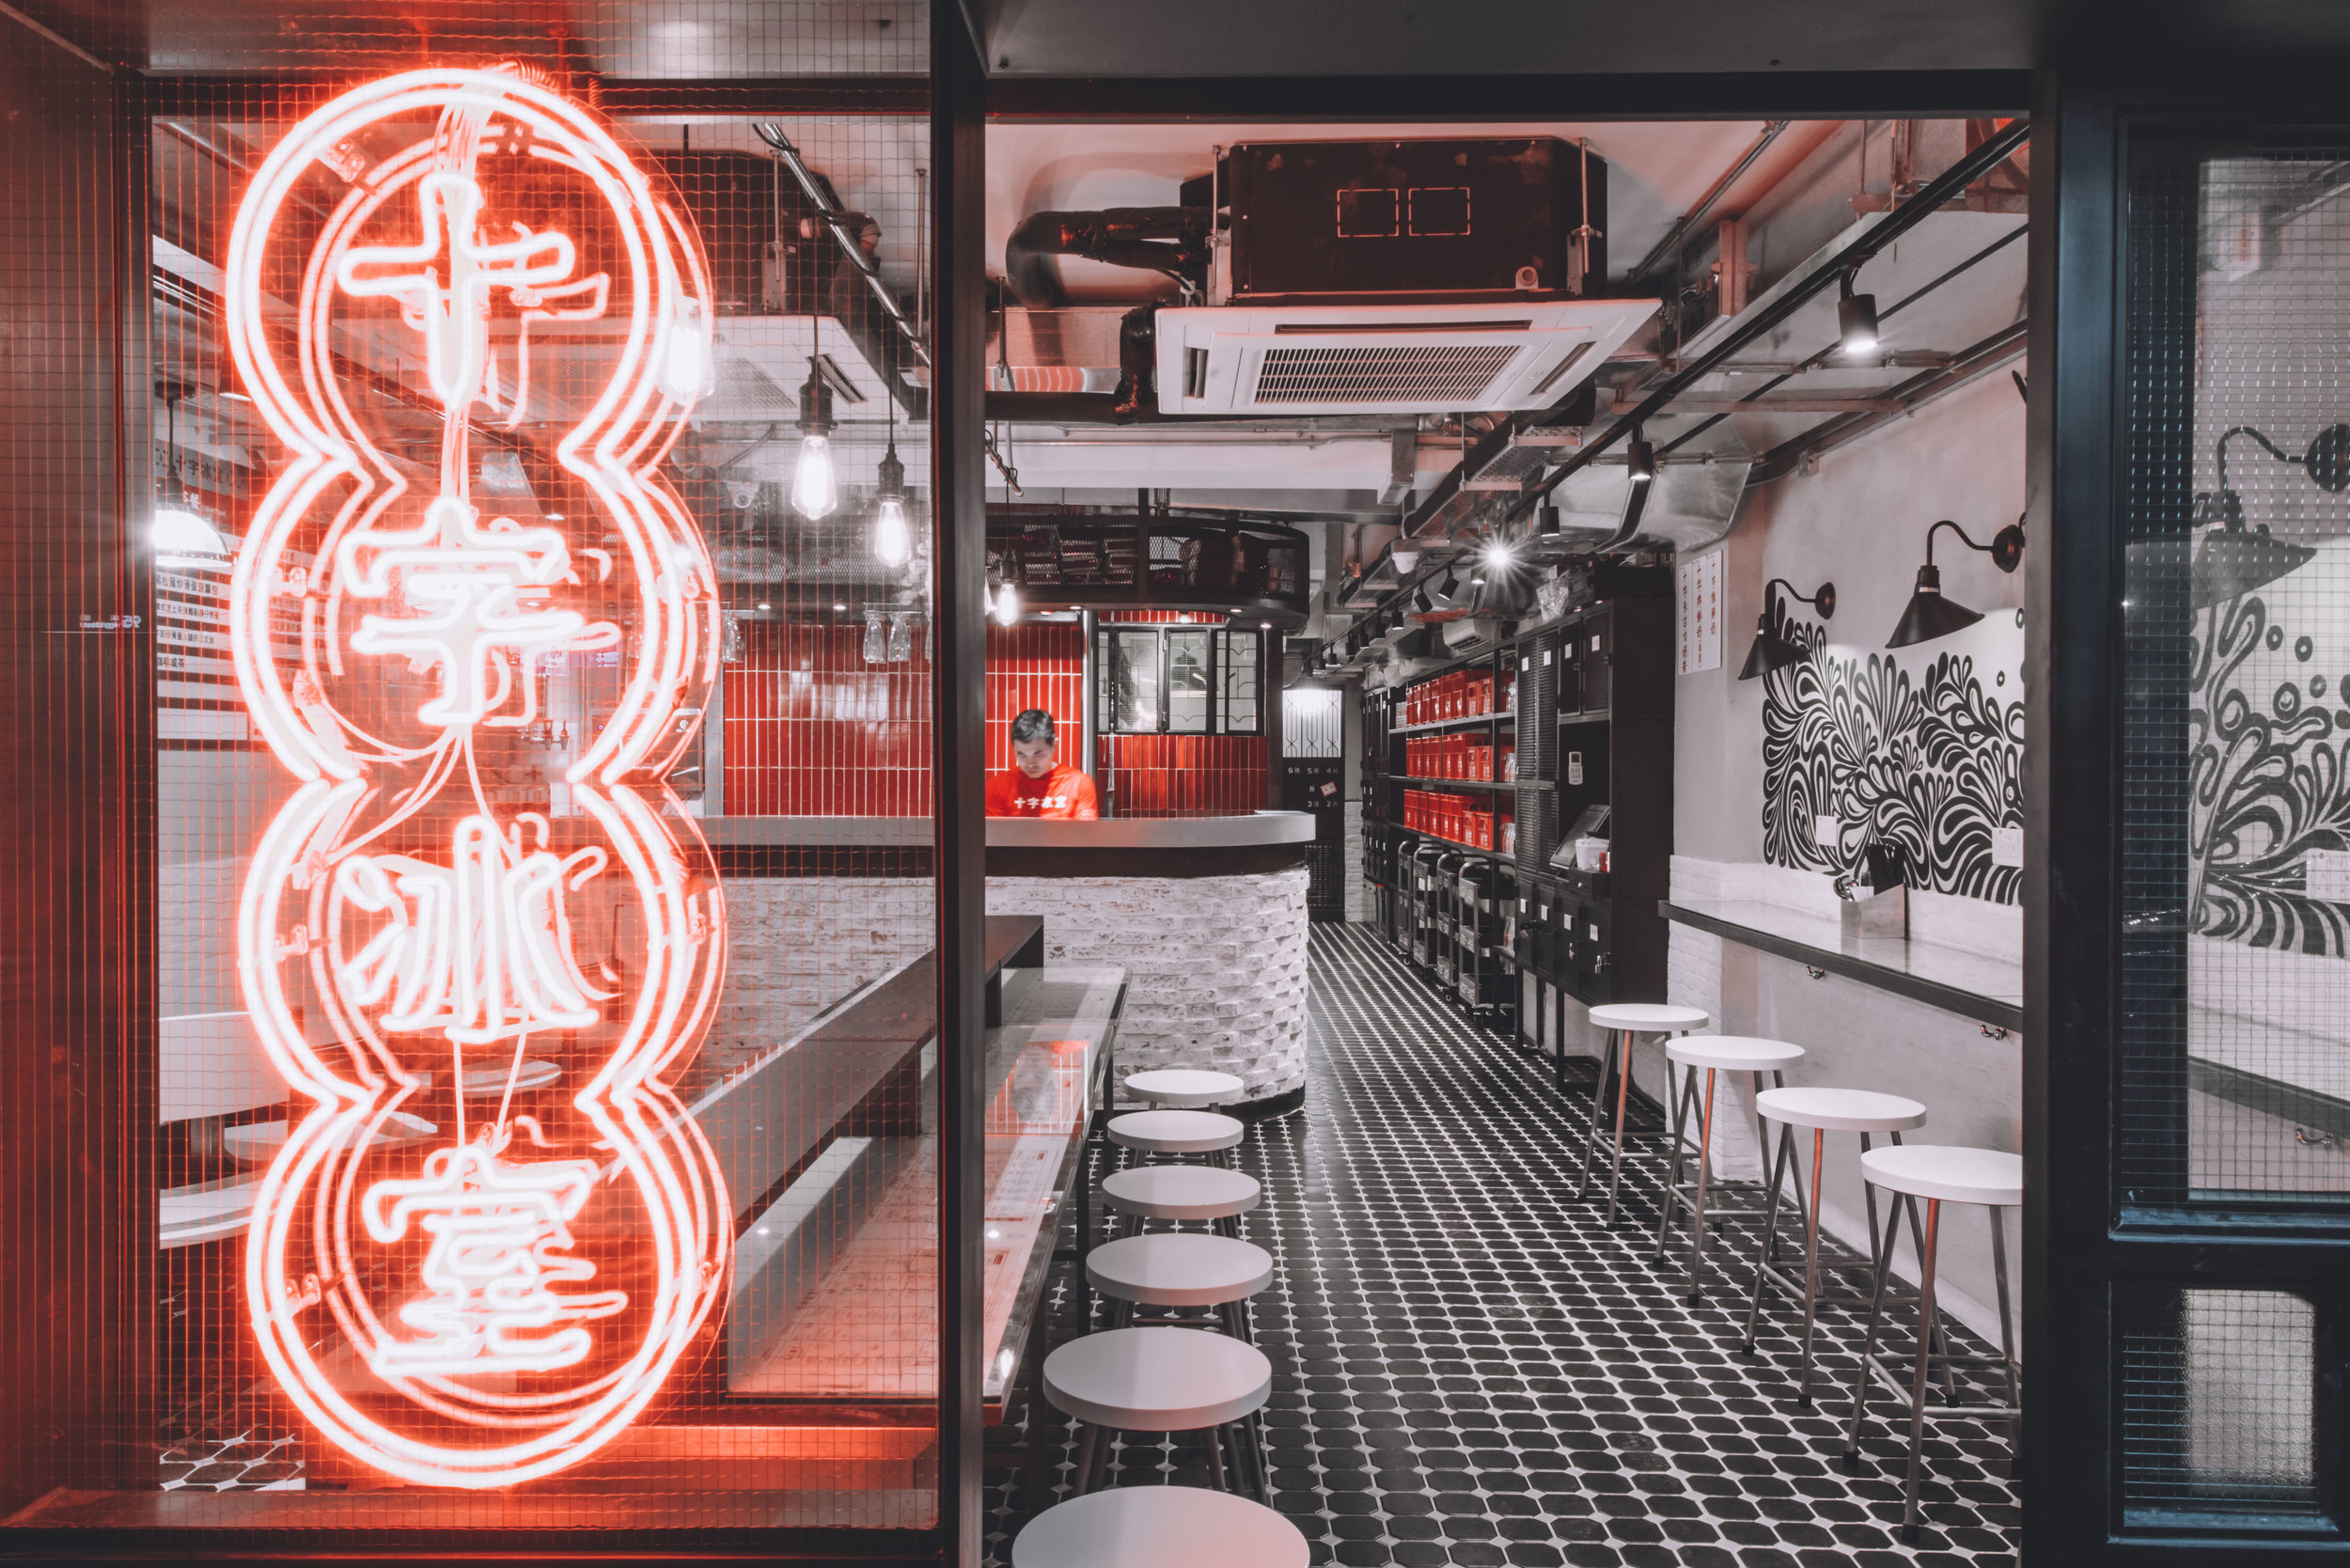 CROSS CAFE - A contemporary twist on the Hong Kong-style diner.